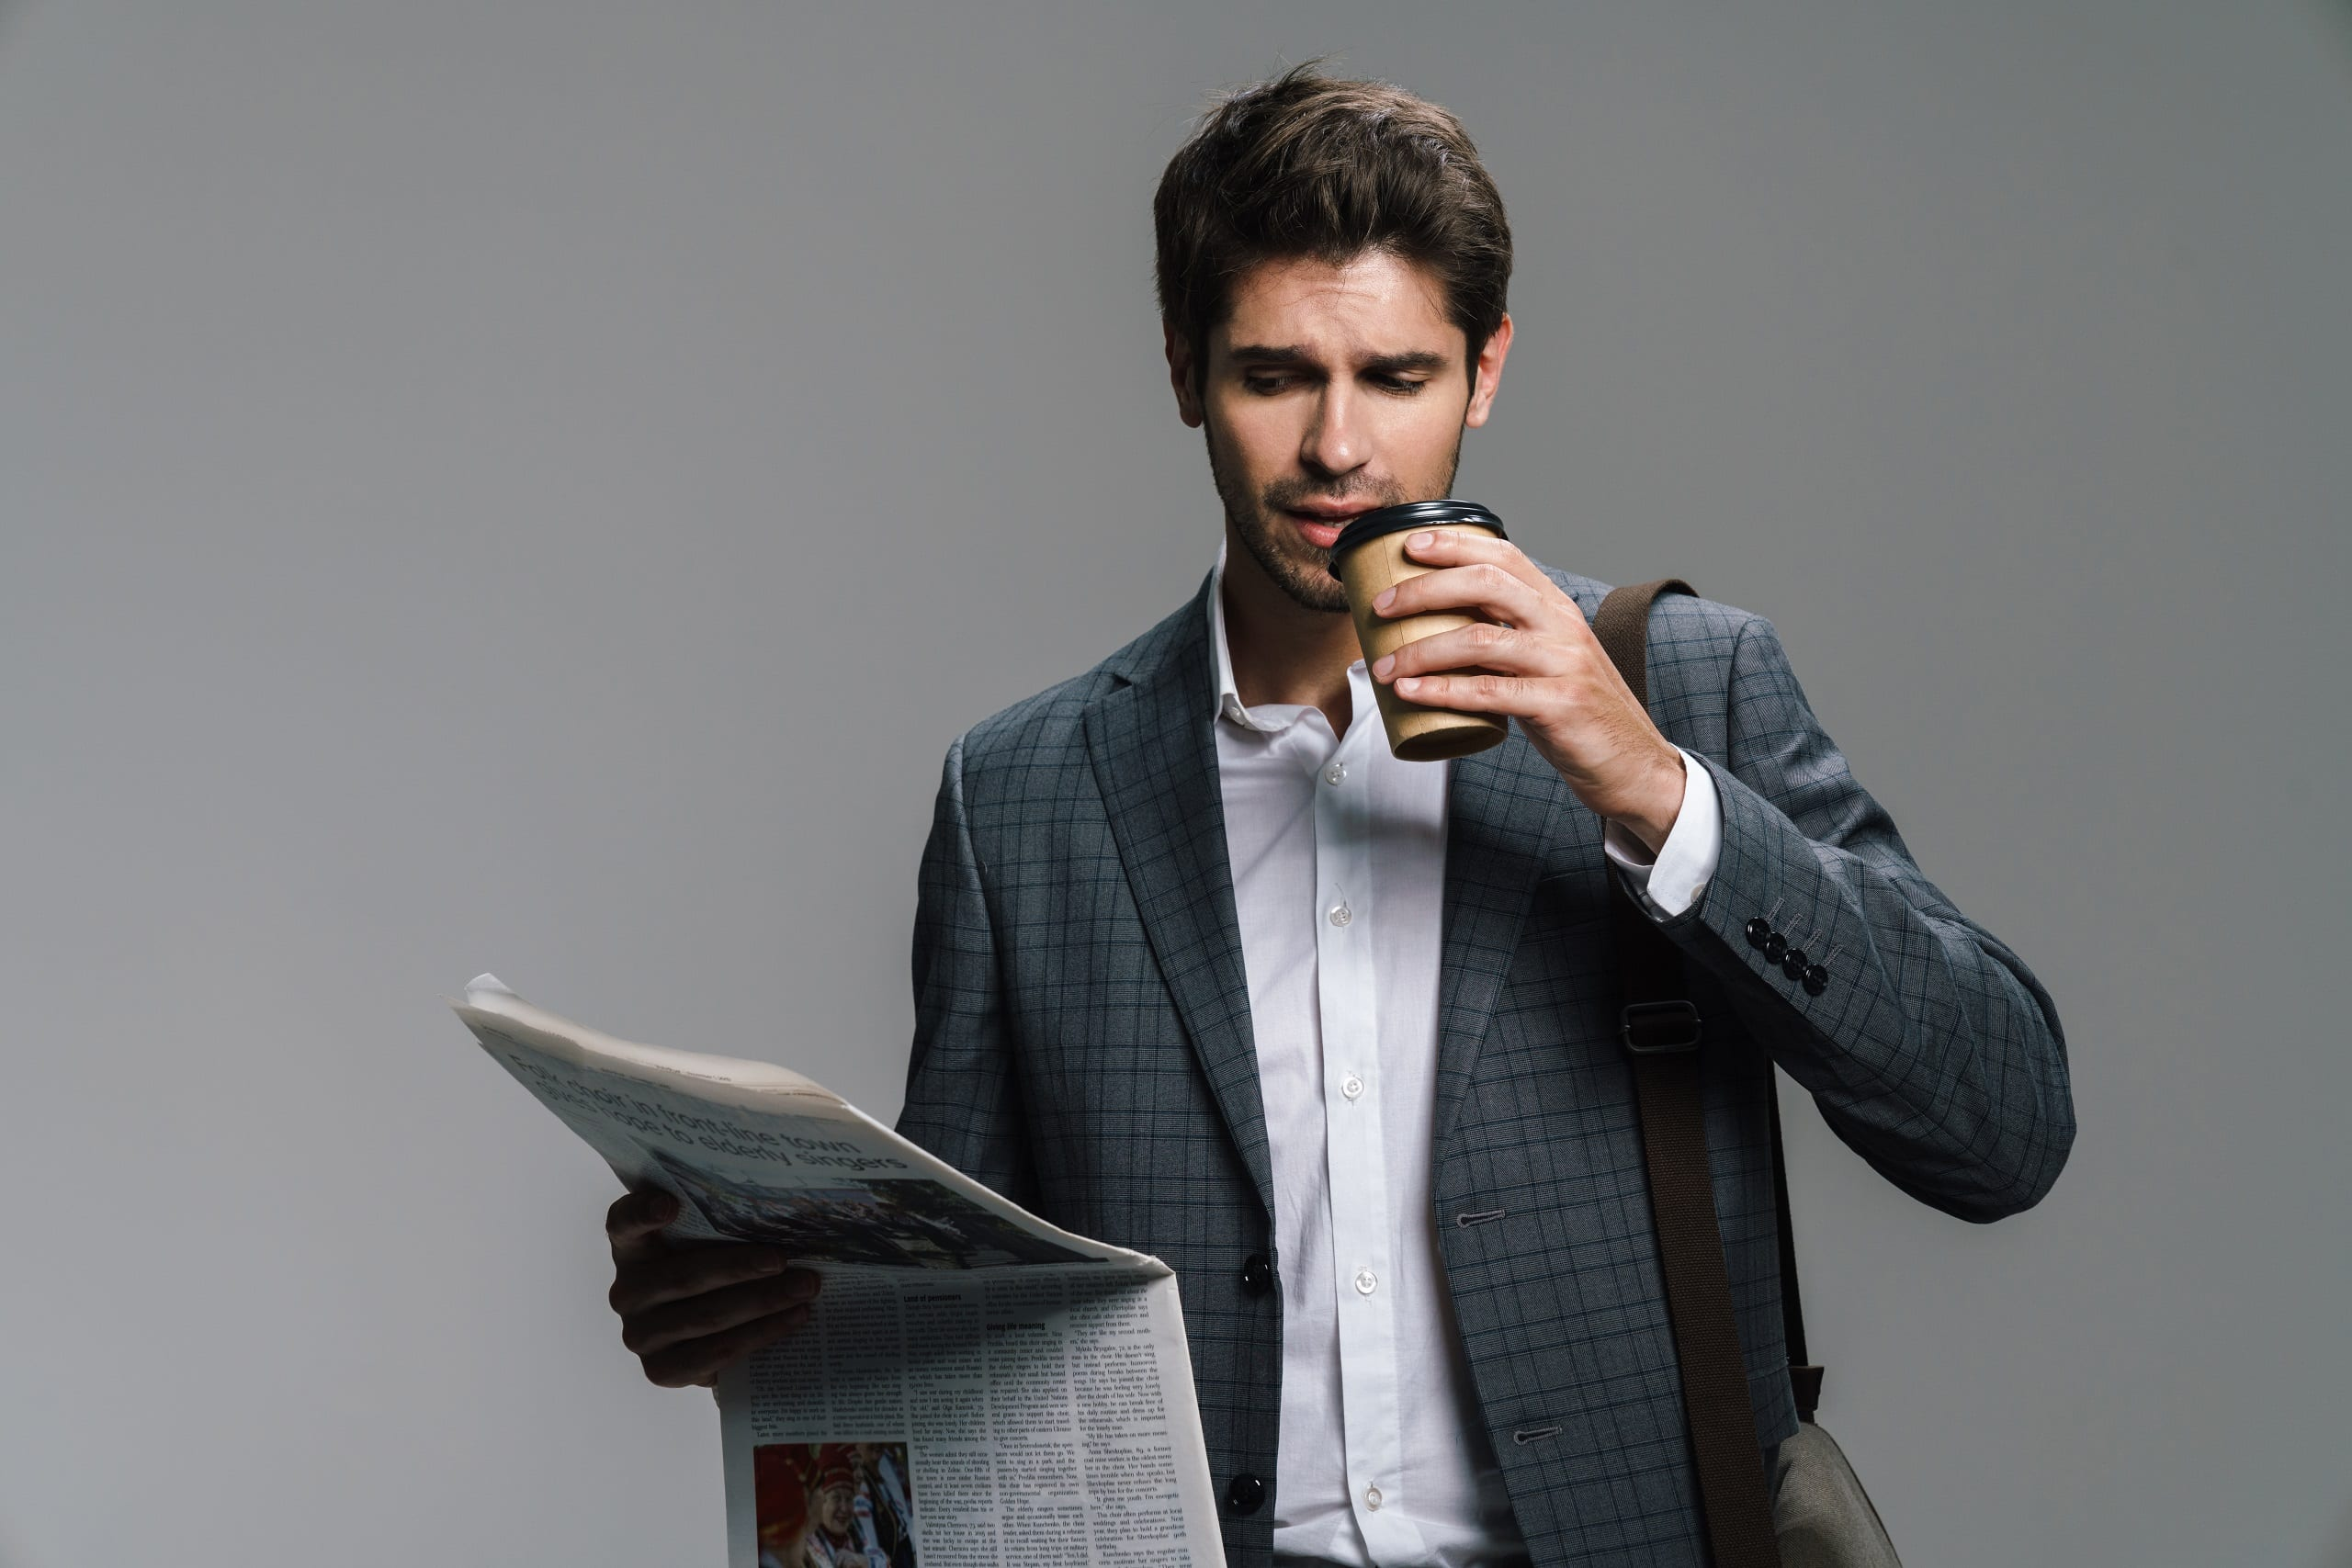 Photo of focused businessman drinking coffee takeaway while reading newspaper isolated over grey wall.